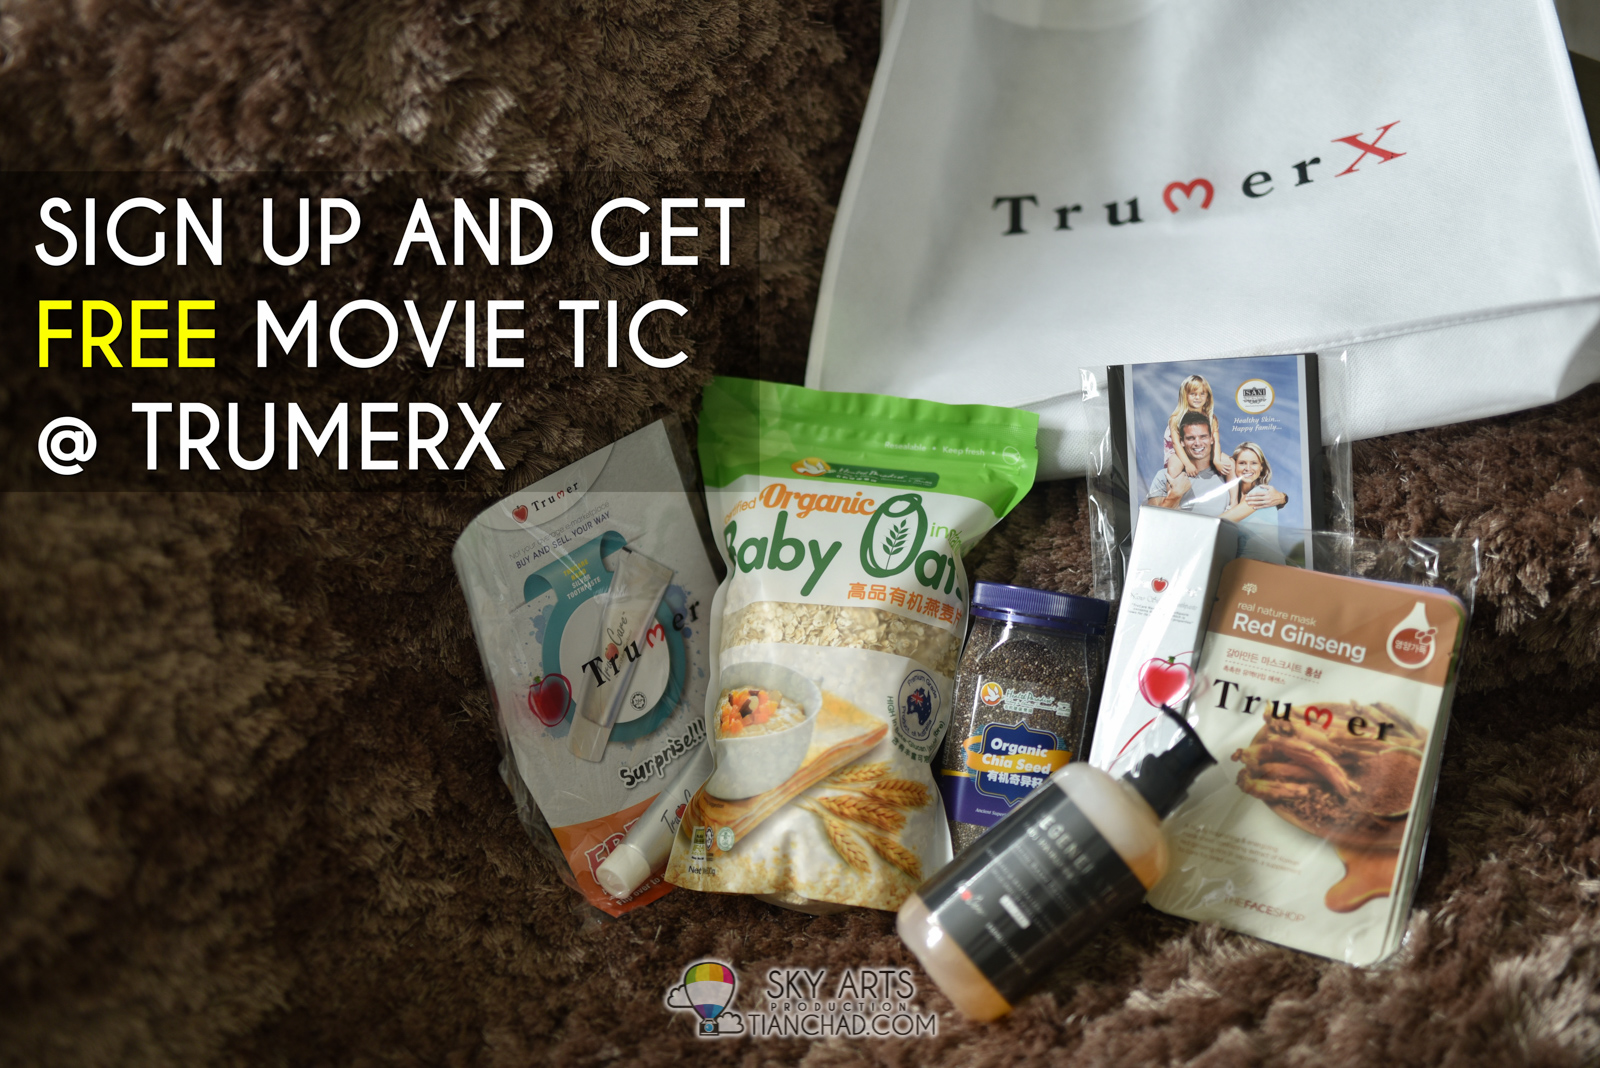 Sign up with TrumerX mobile app and get a free movie ticket OR RM10 off the